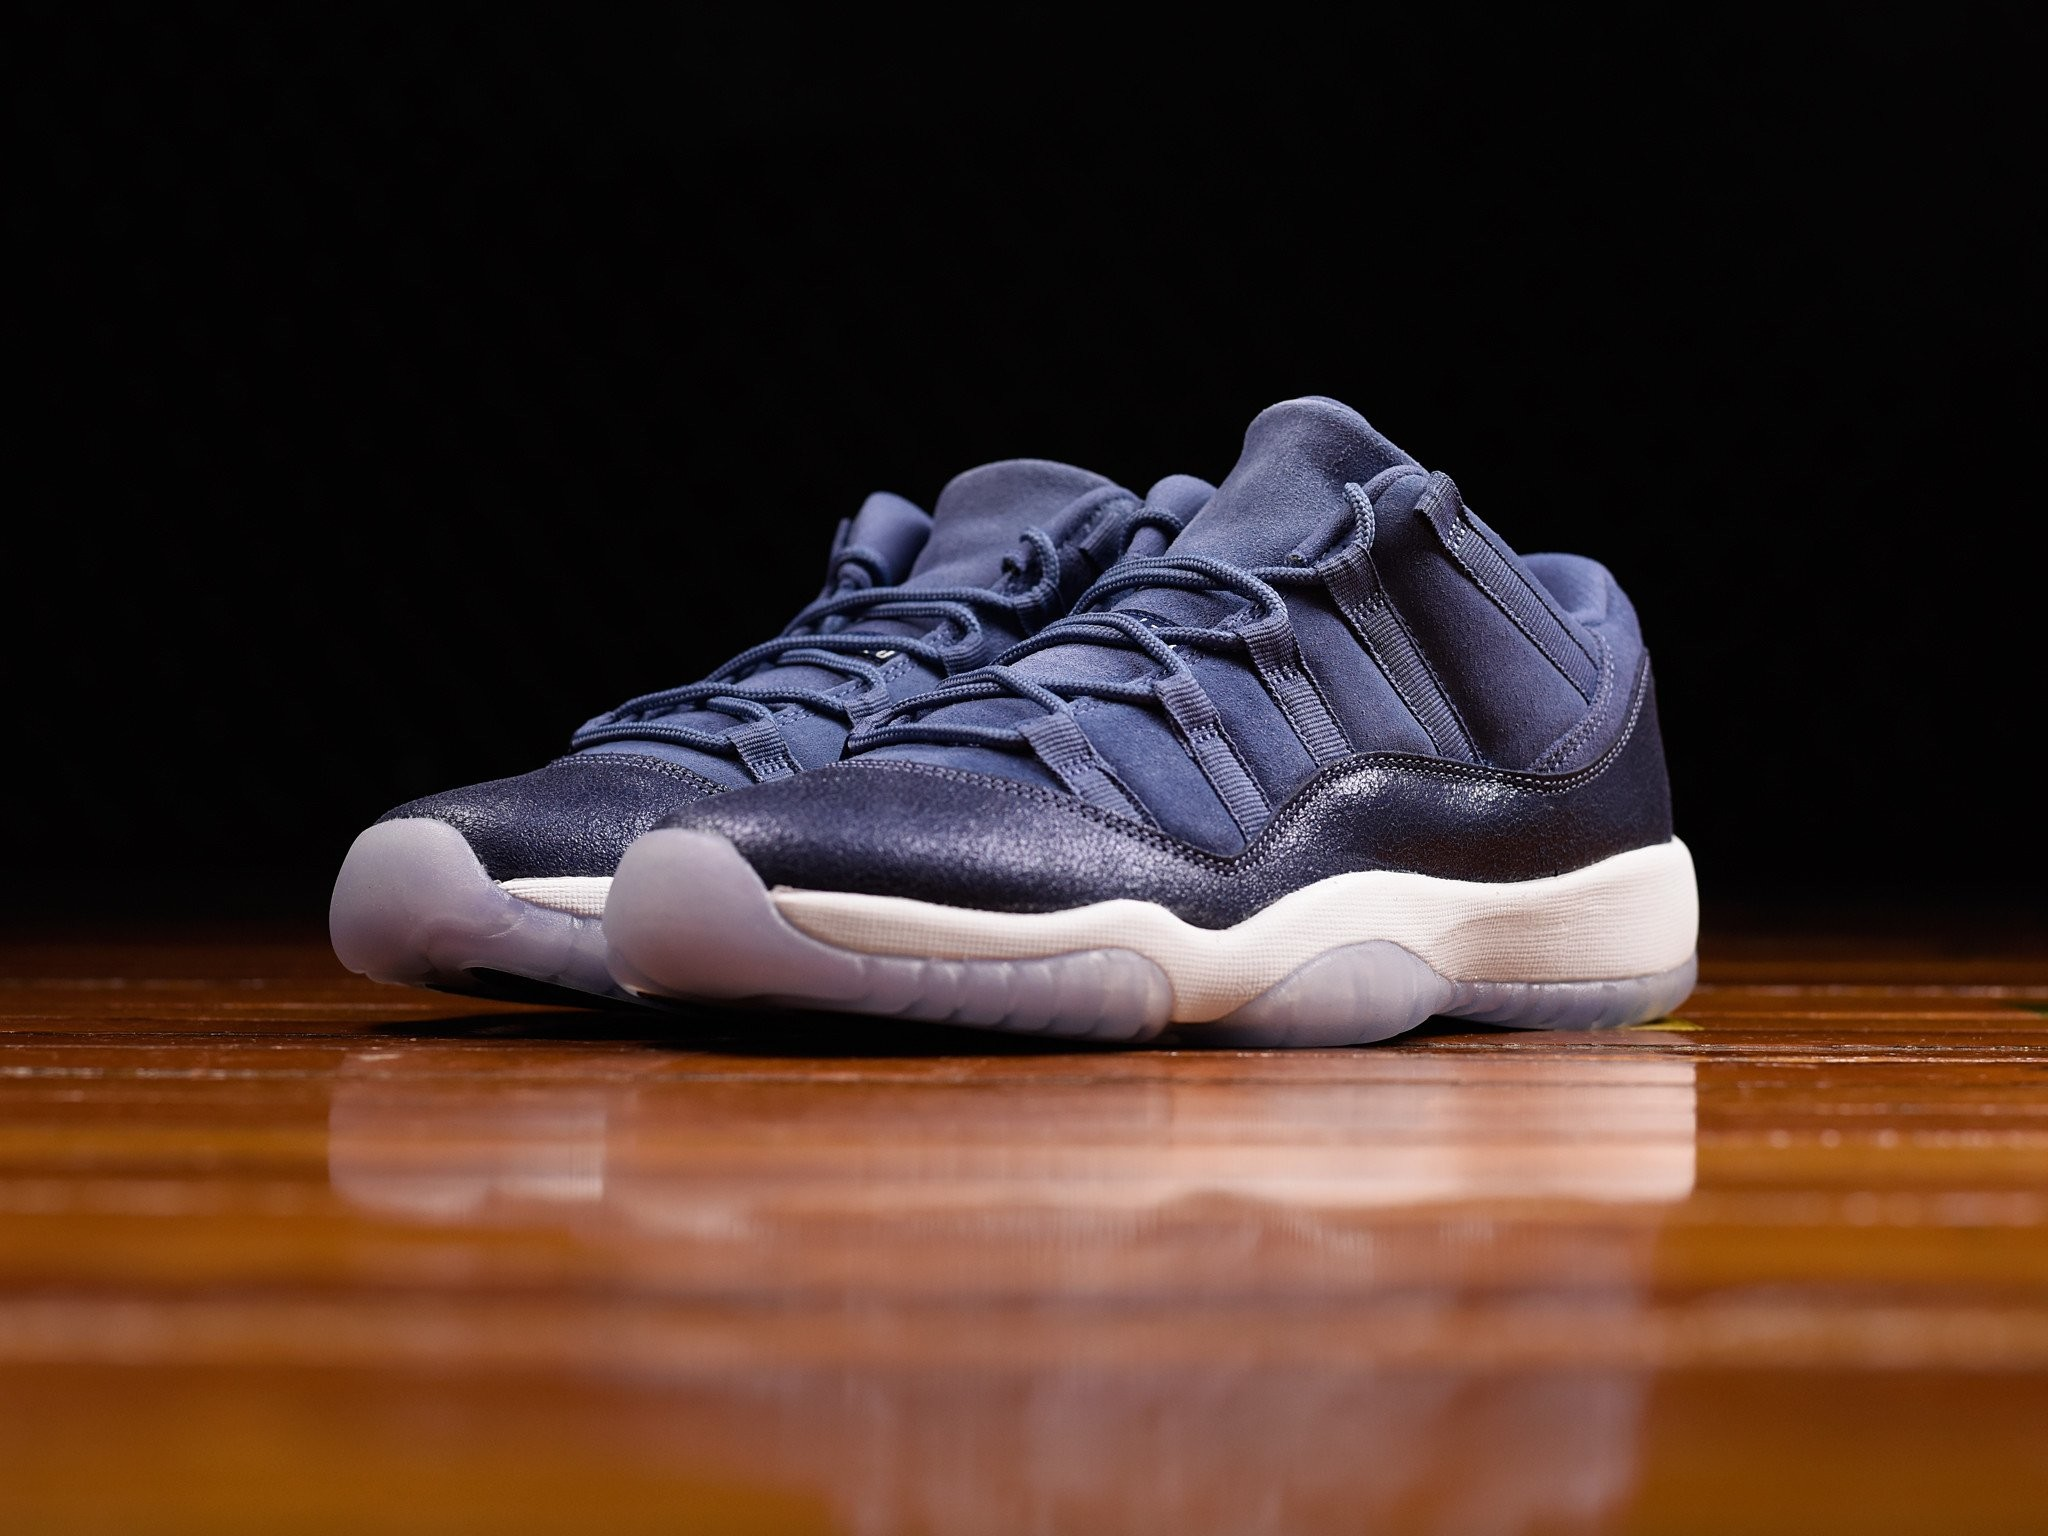 2048x1536 The Air Jordan 11 Low GS Blue Moon Also Releases Next Week durable service